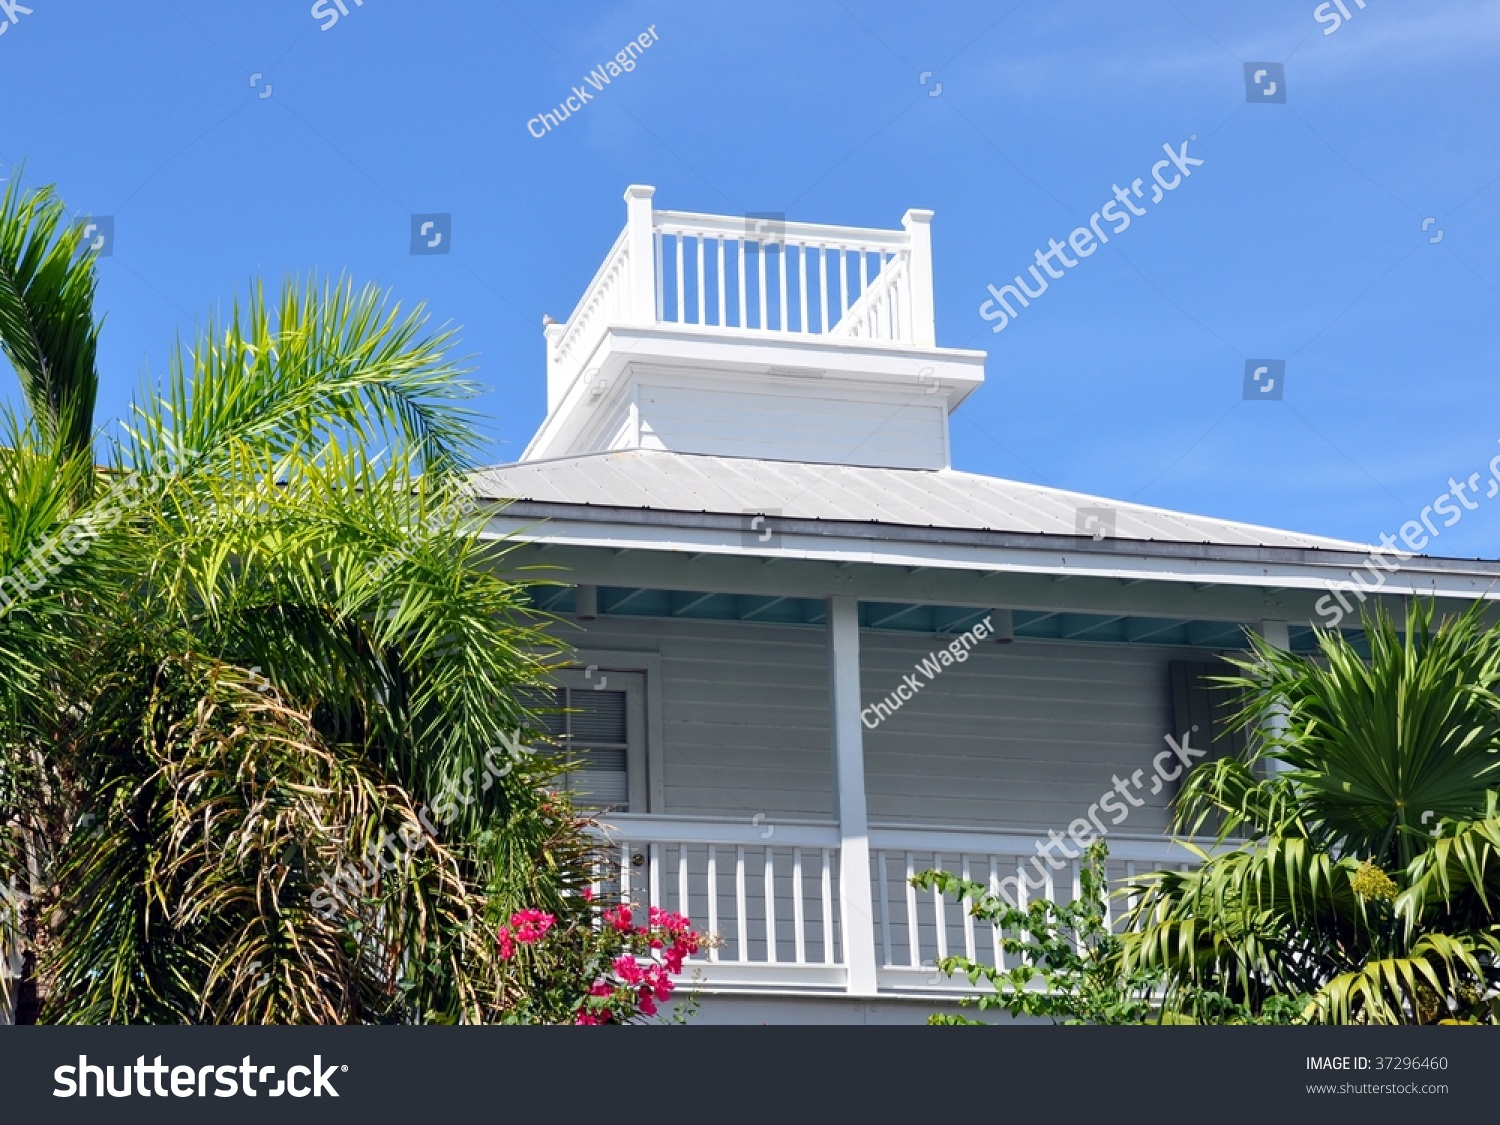 Key West Style Architecture With Widow 39 S Walk Stock Photo